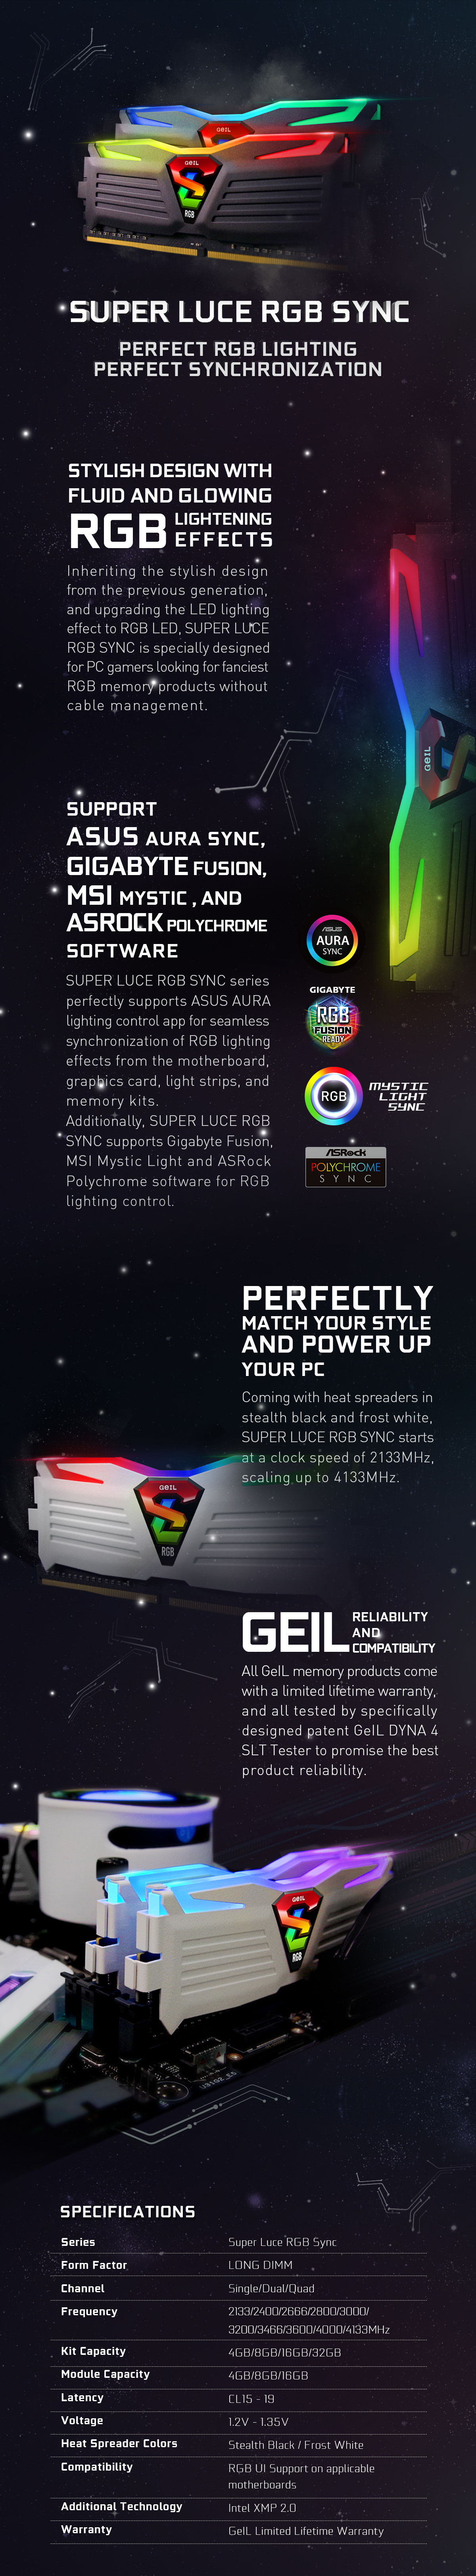 A large marketing image providing additional information about the product GeIL 16GB Kit (2x8GB) DDR4 SUPER LUCE RGB SYNC C16 3000MHz - Additional alt info not provided